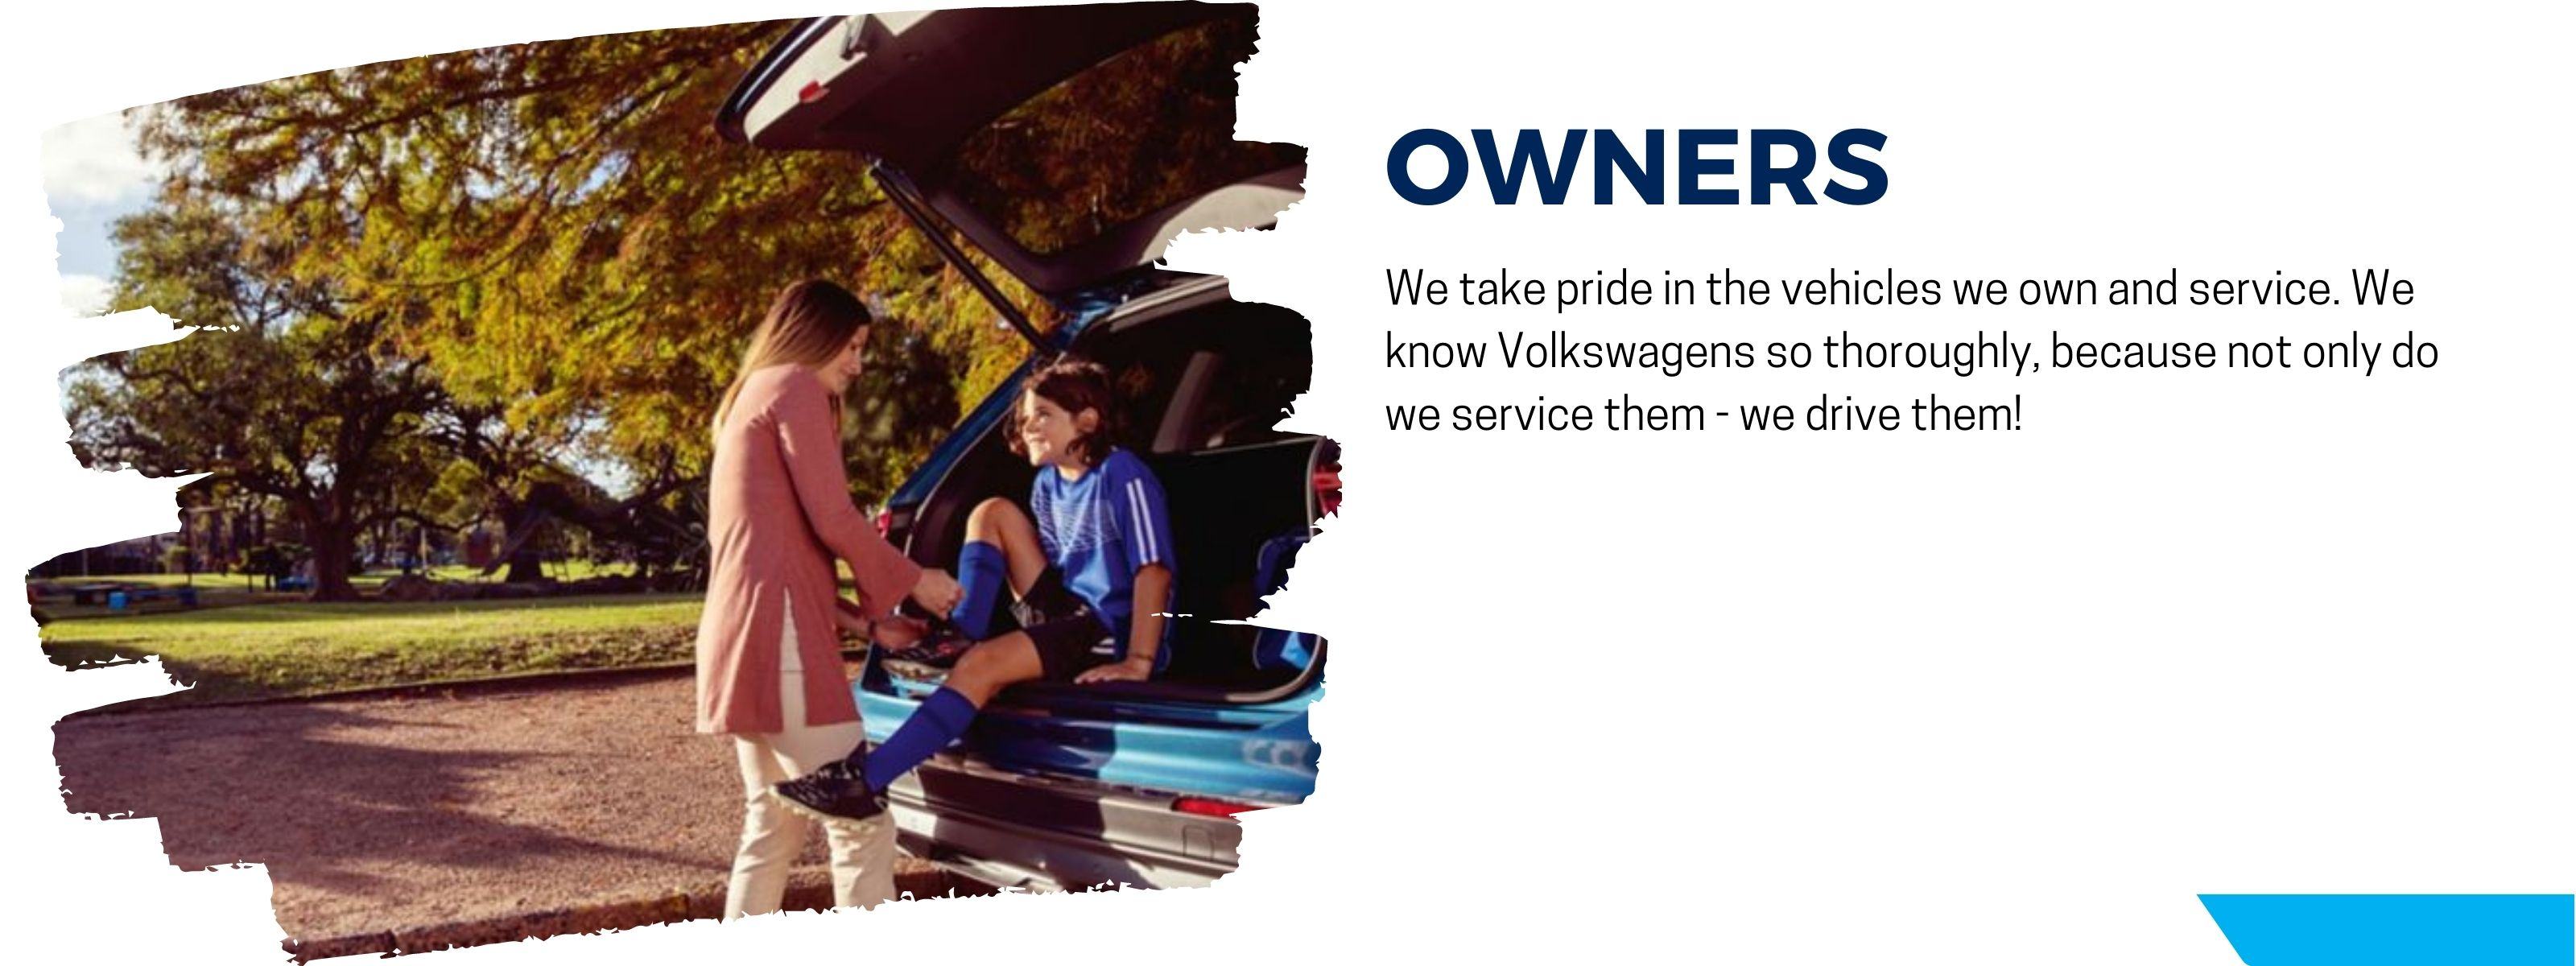 we are vw owners too